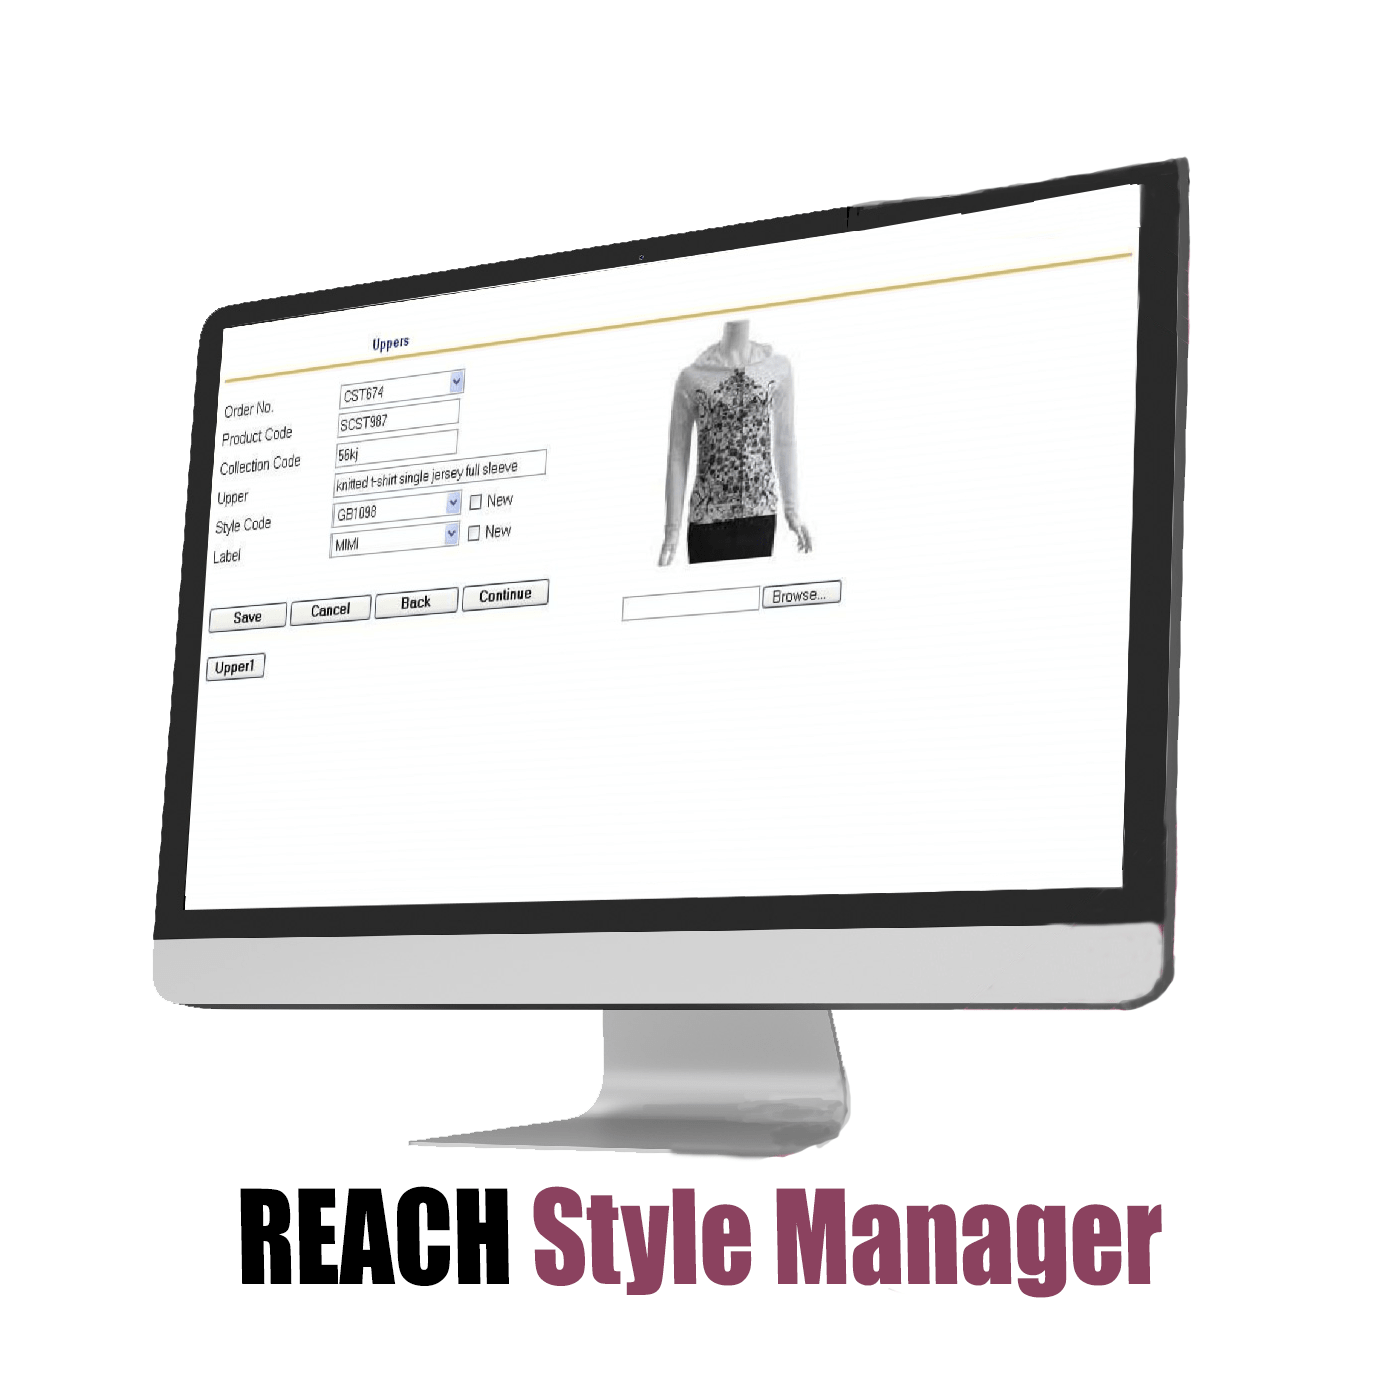 apparel-collection-management-software-6